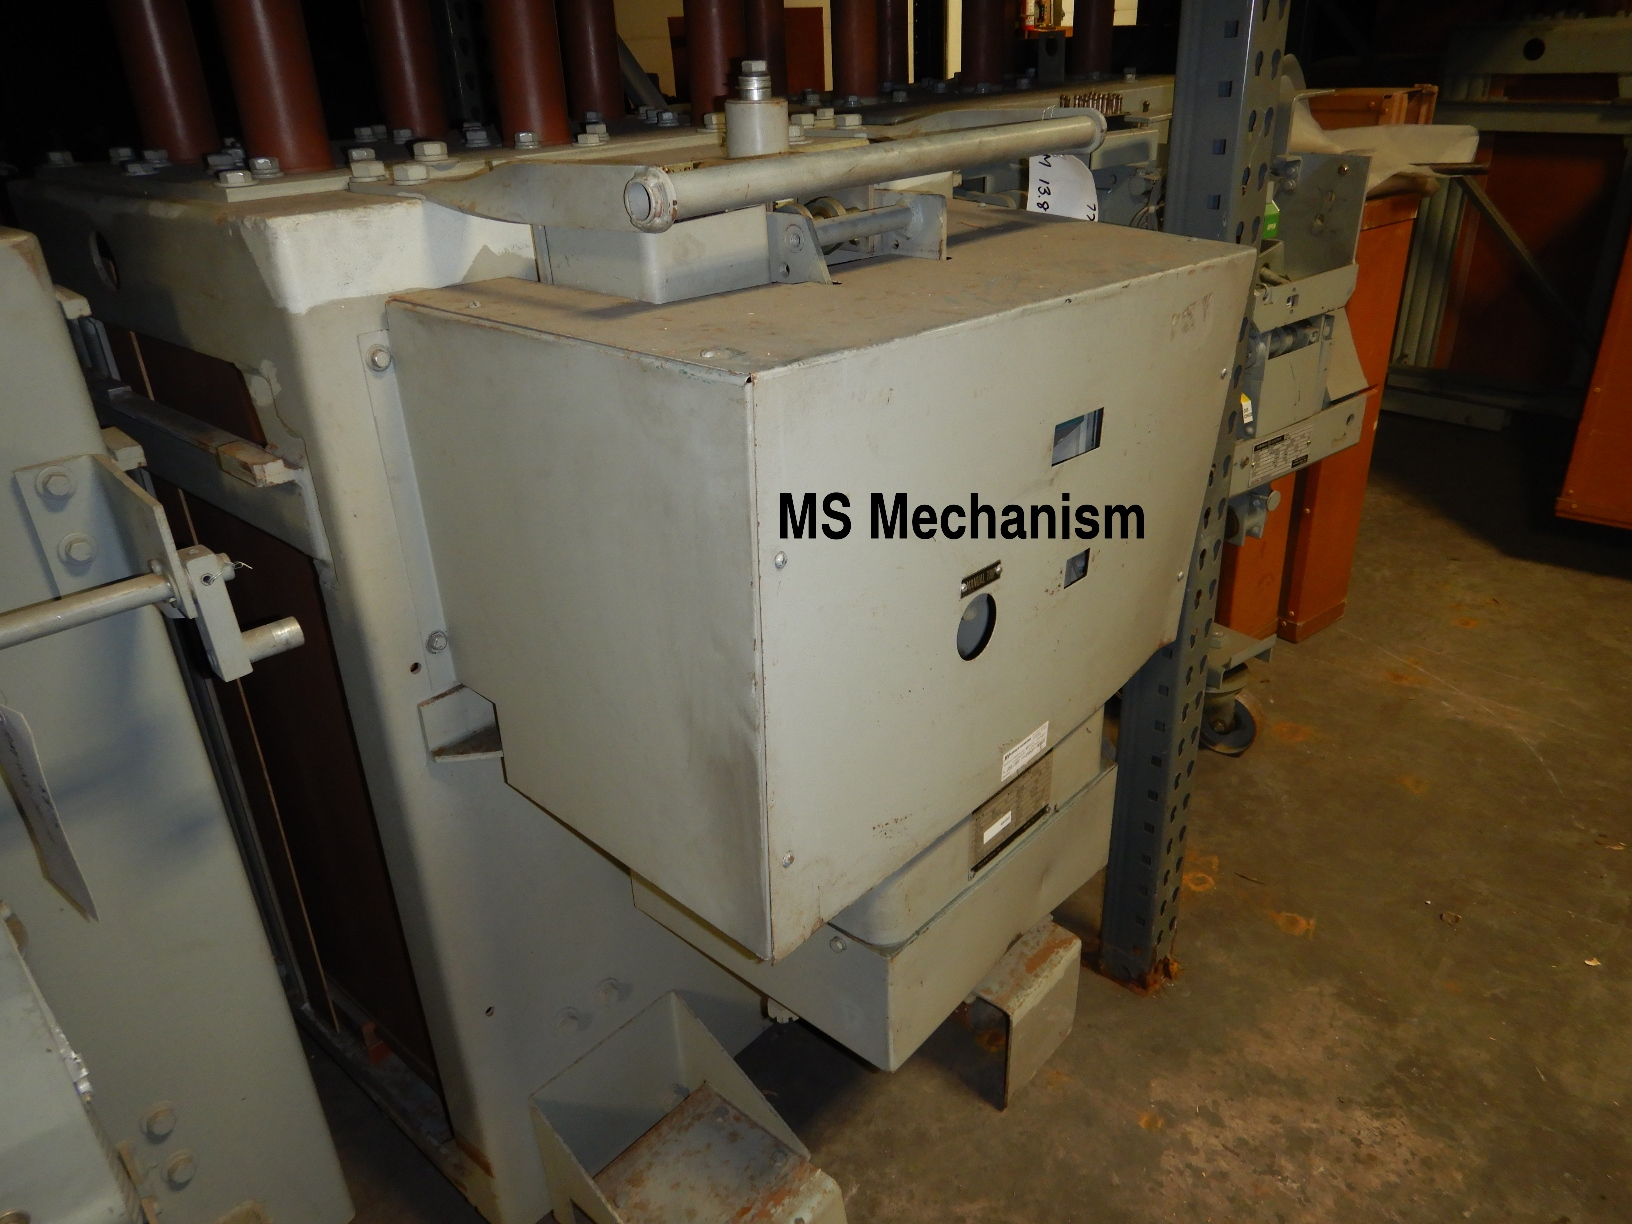 Magne-Blast breaker with MS mechanism.